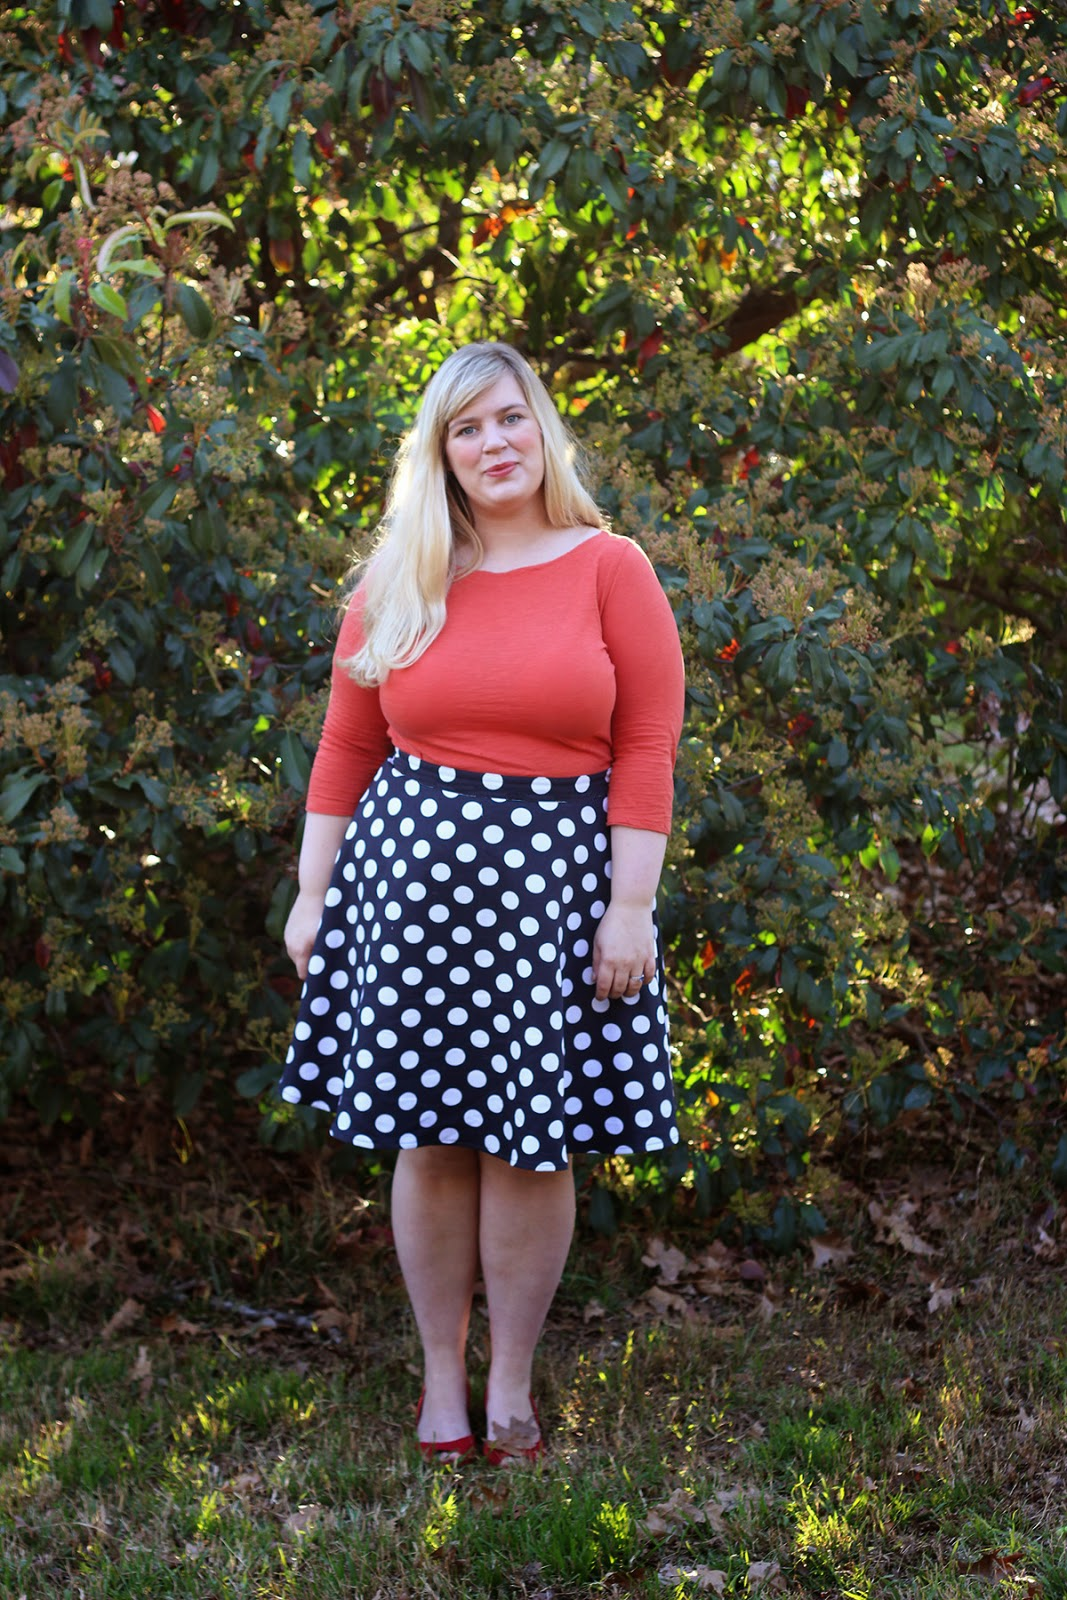 9bfffacca Polka dots will always be welcome in my wardrobe, increased attention to  glamour or not. Some loves you can't and shouldn't outgrow.